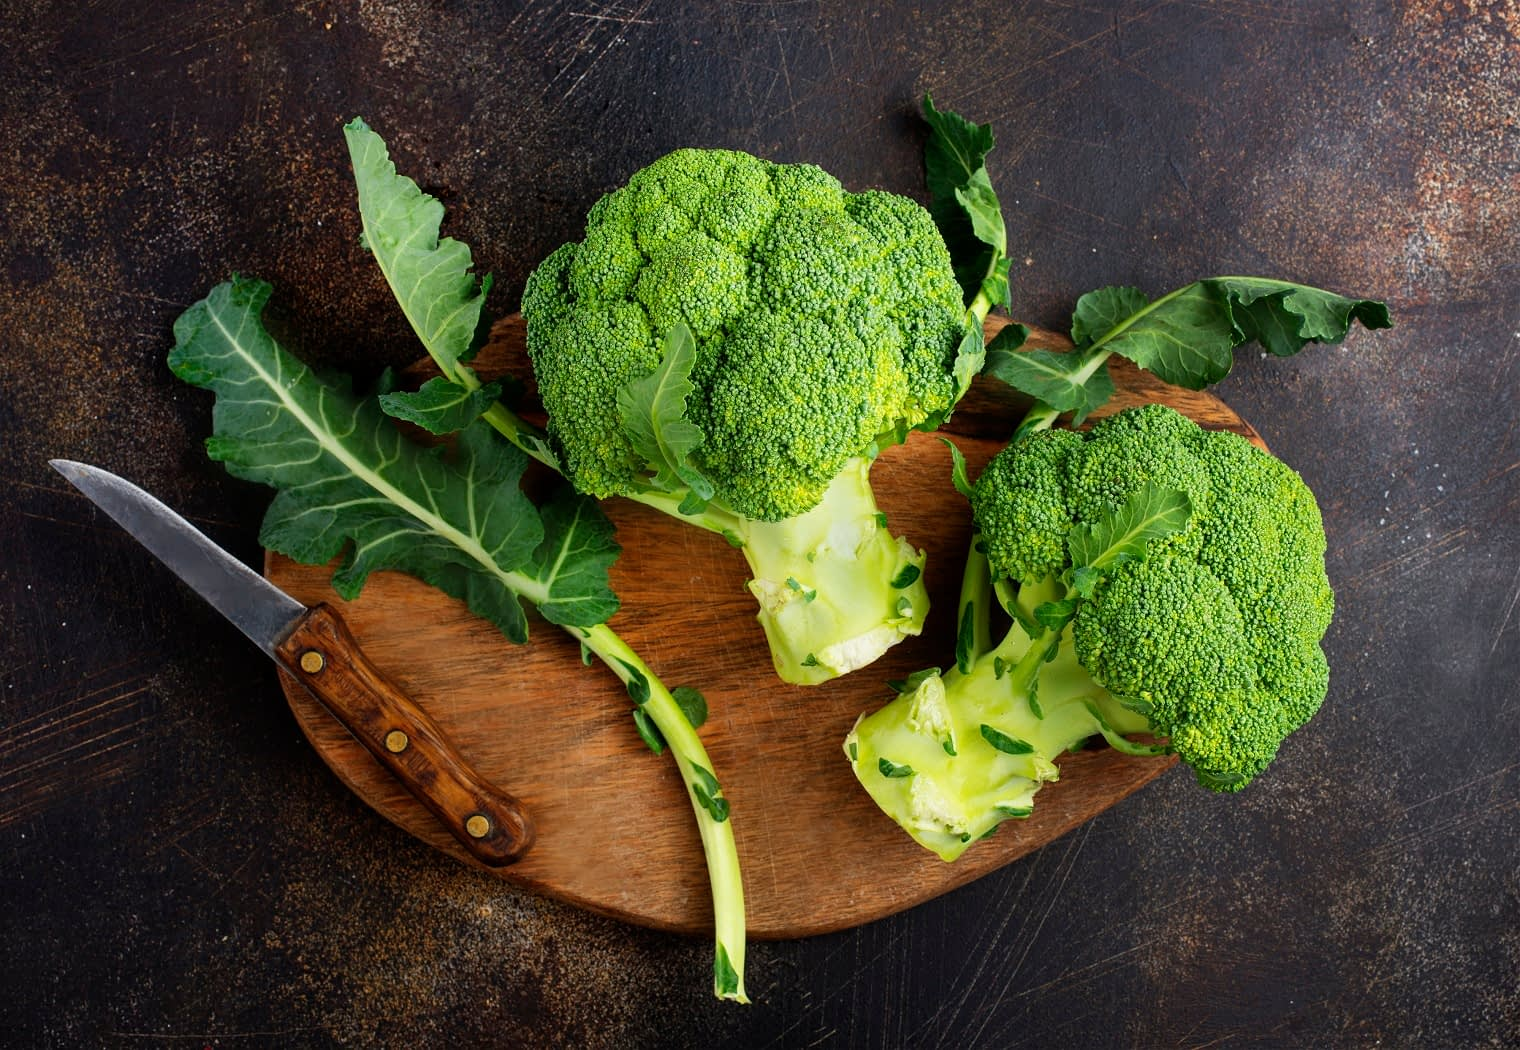 two heads of broccoli on a cutting board